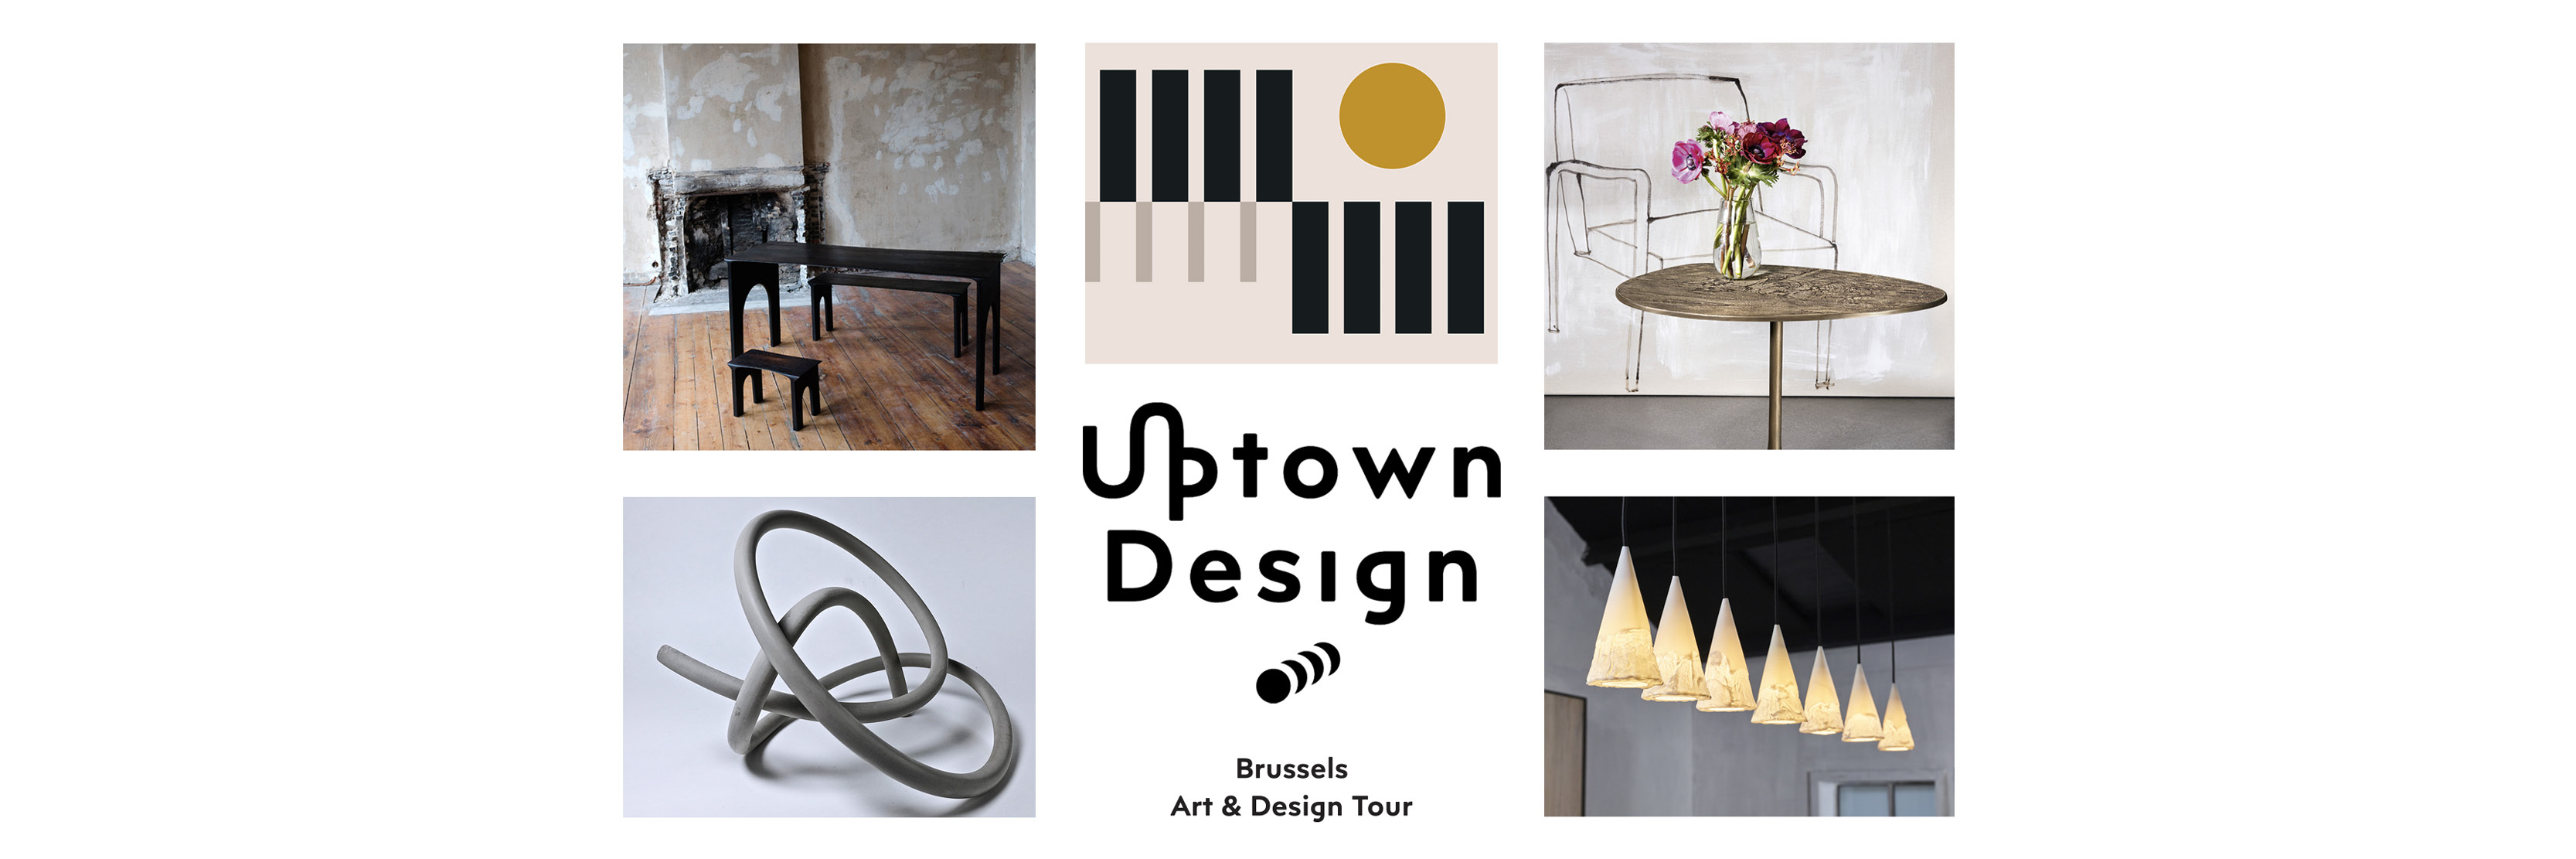 Uptown Design 2019 - Brussels Art & Design Tour